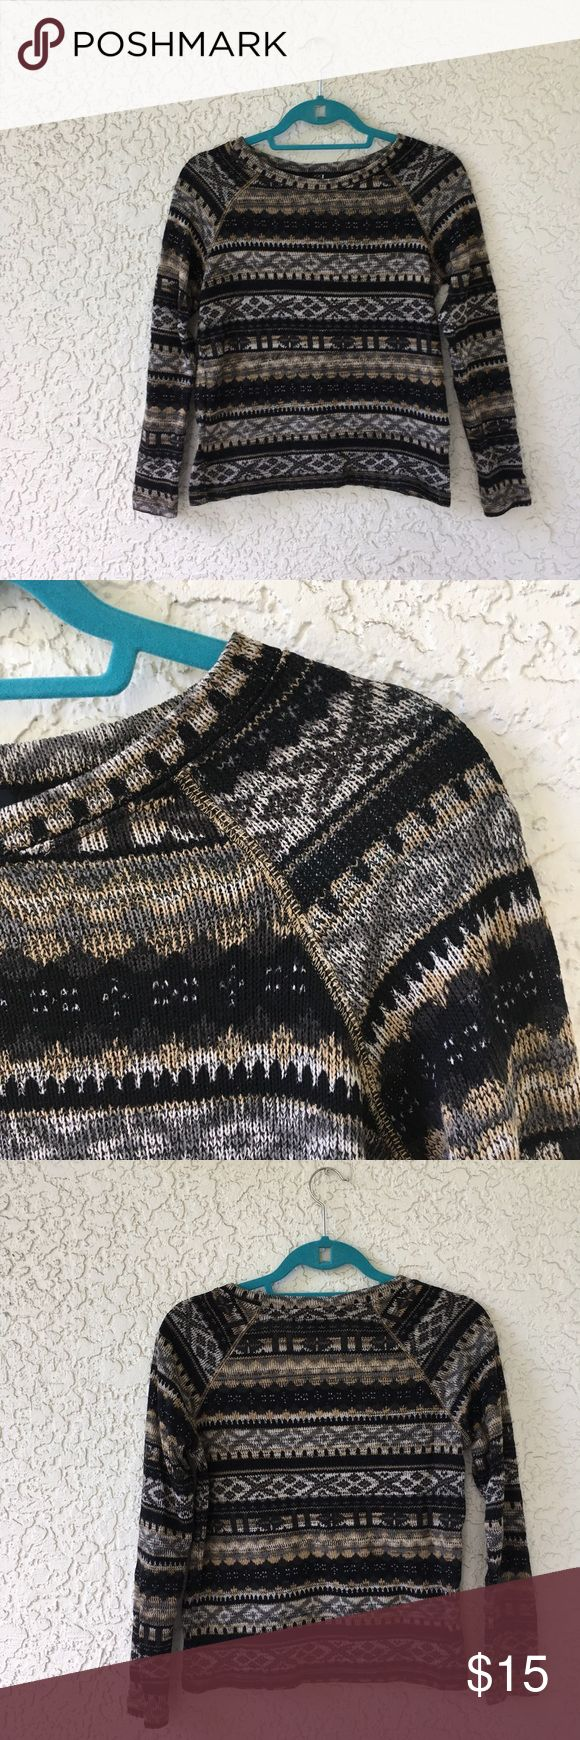 Forever 21 black and brown tribal print sweater In excellent condition! Forever 21 black and brown tribal print sweater. Size small. Please use the offer tool for offers and not in the comments. I'm not interested in trading. Forever 21 Sweaters Crew & Scoop Necks